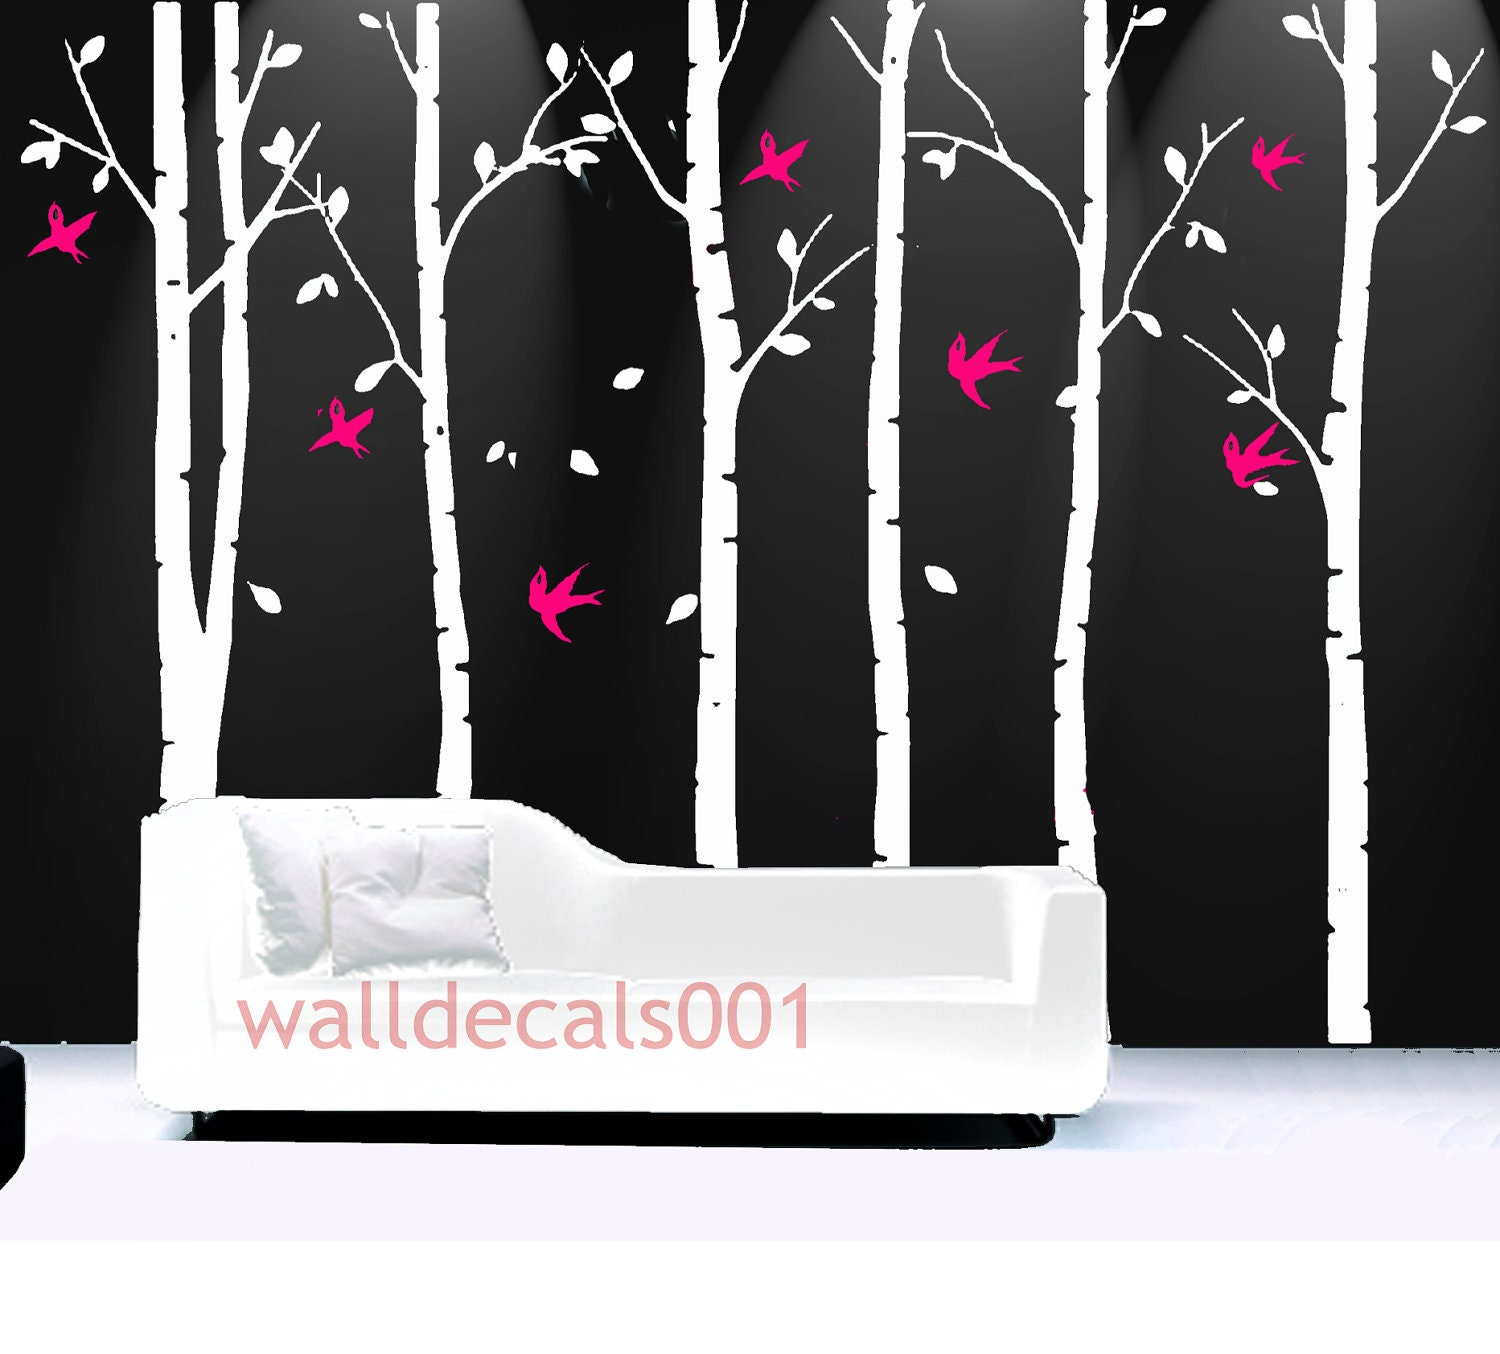 Wall Decor Decals   Living Interior Design